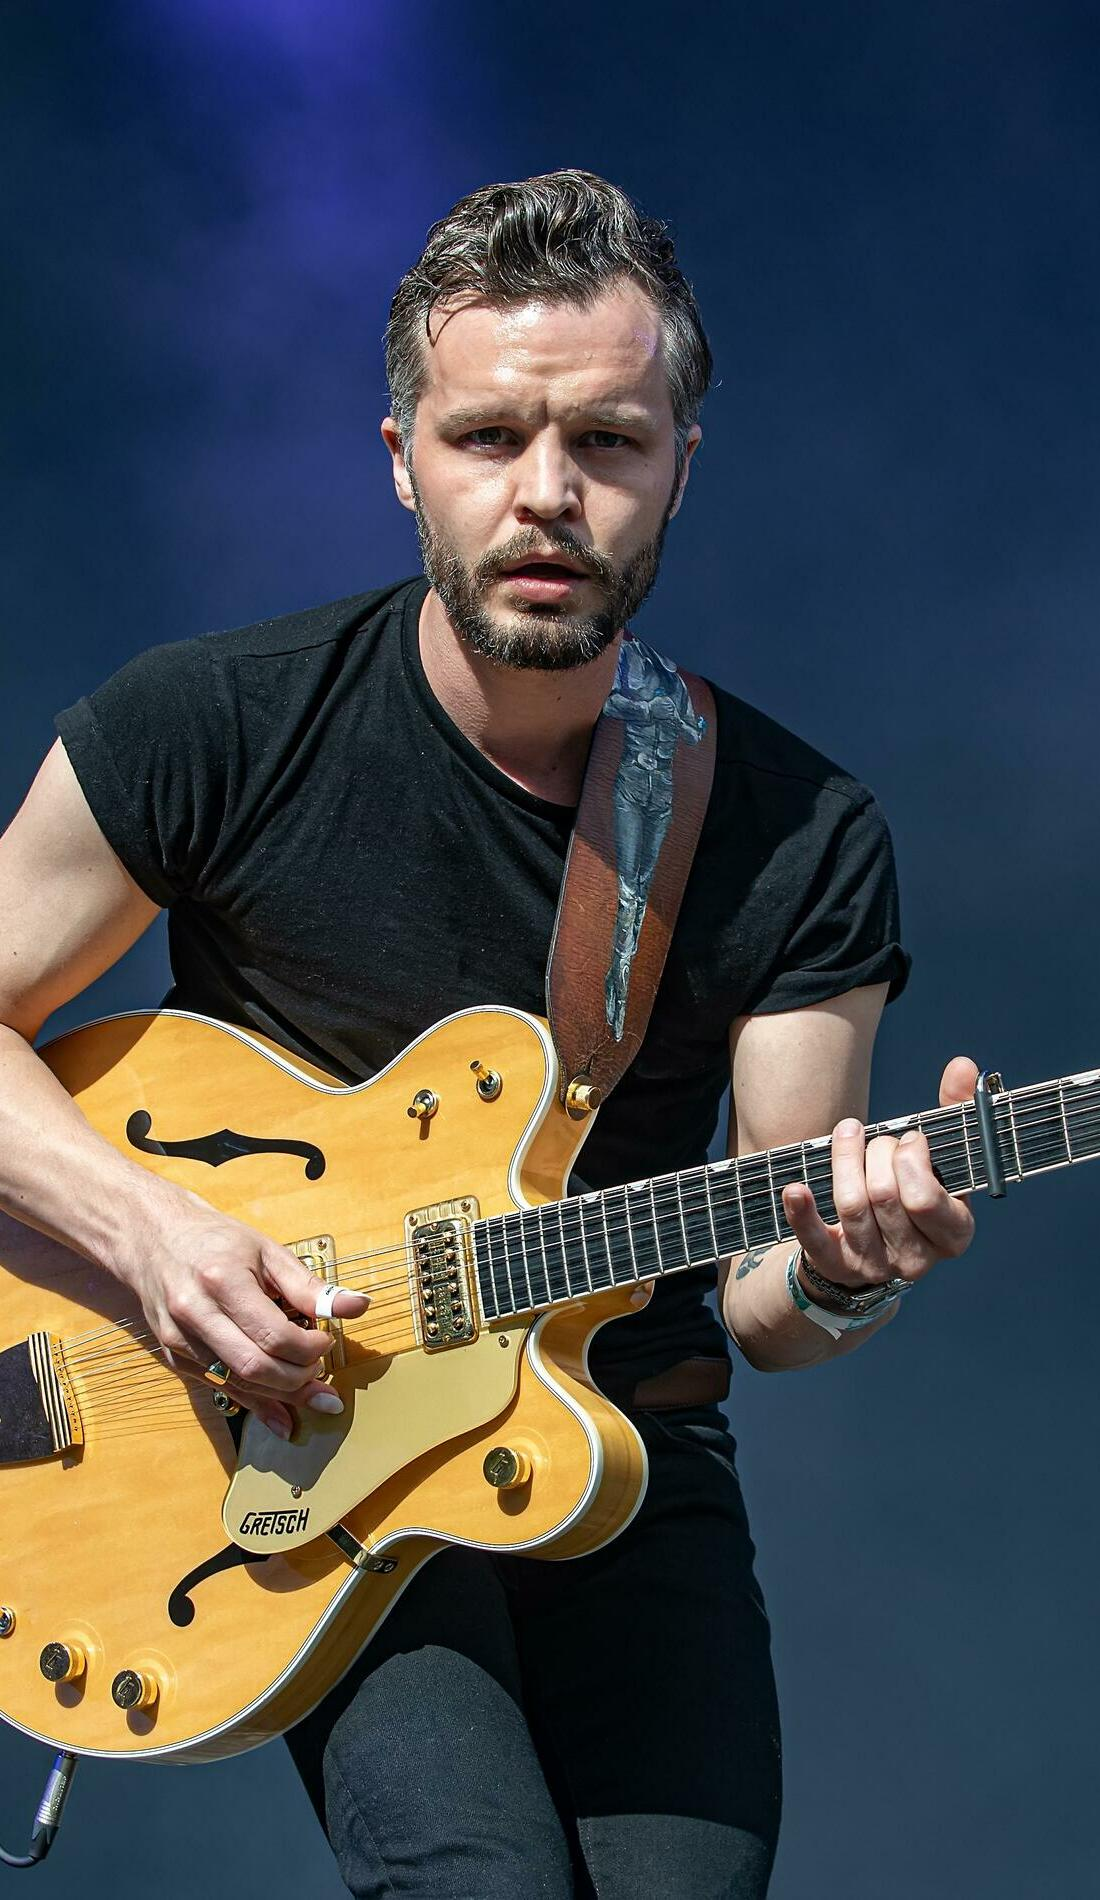 A The Tallest Man On Earth live event